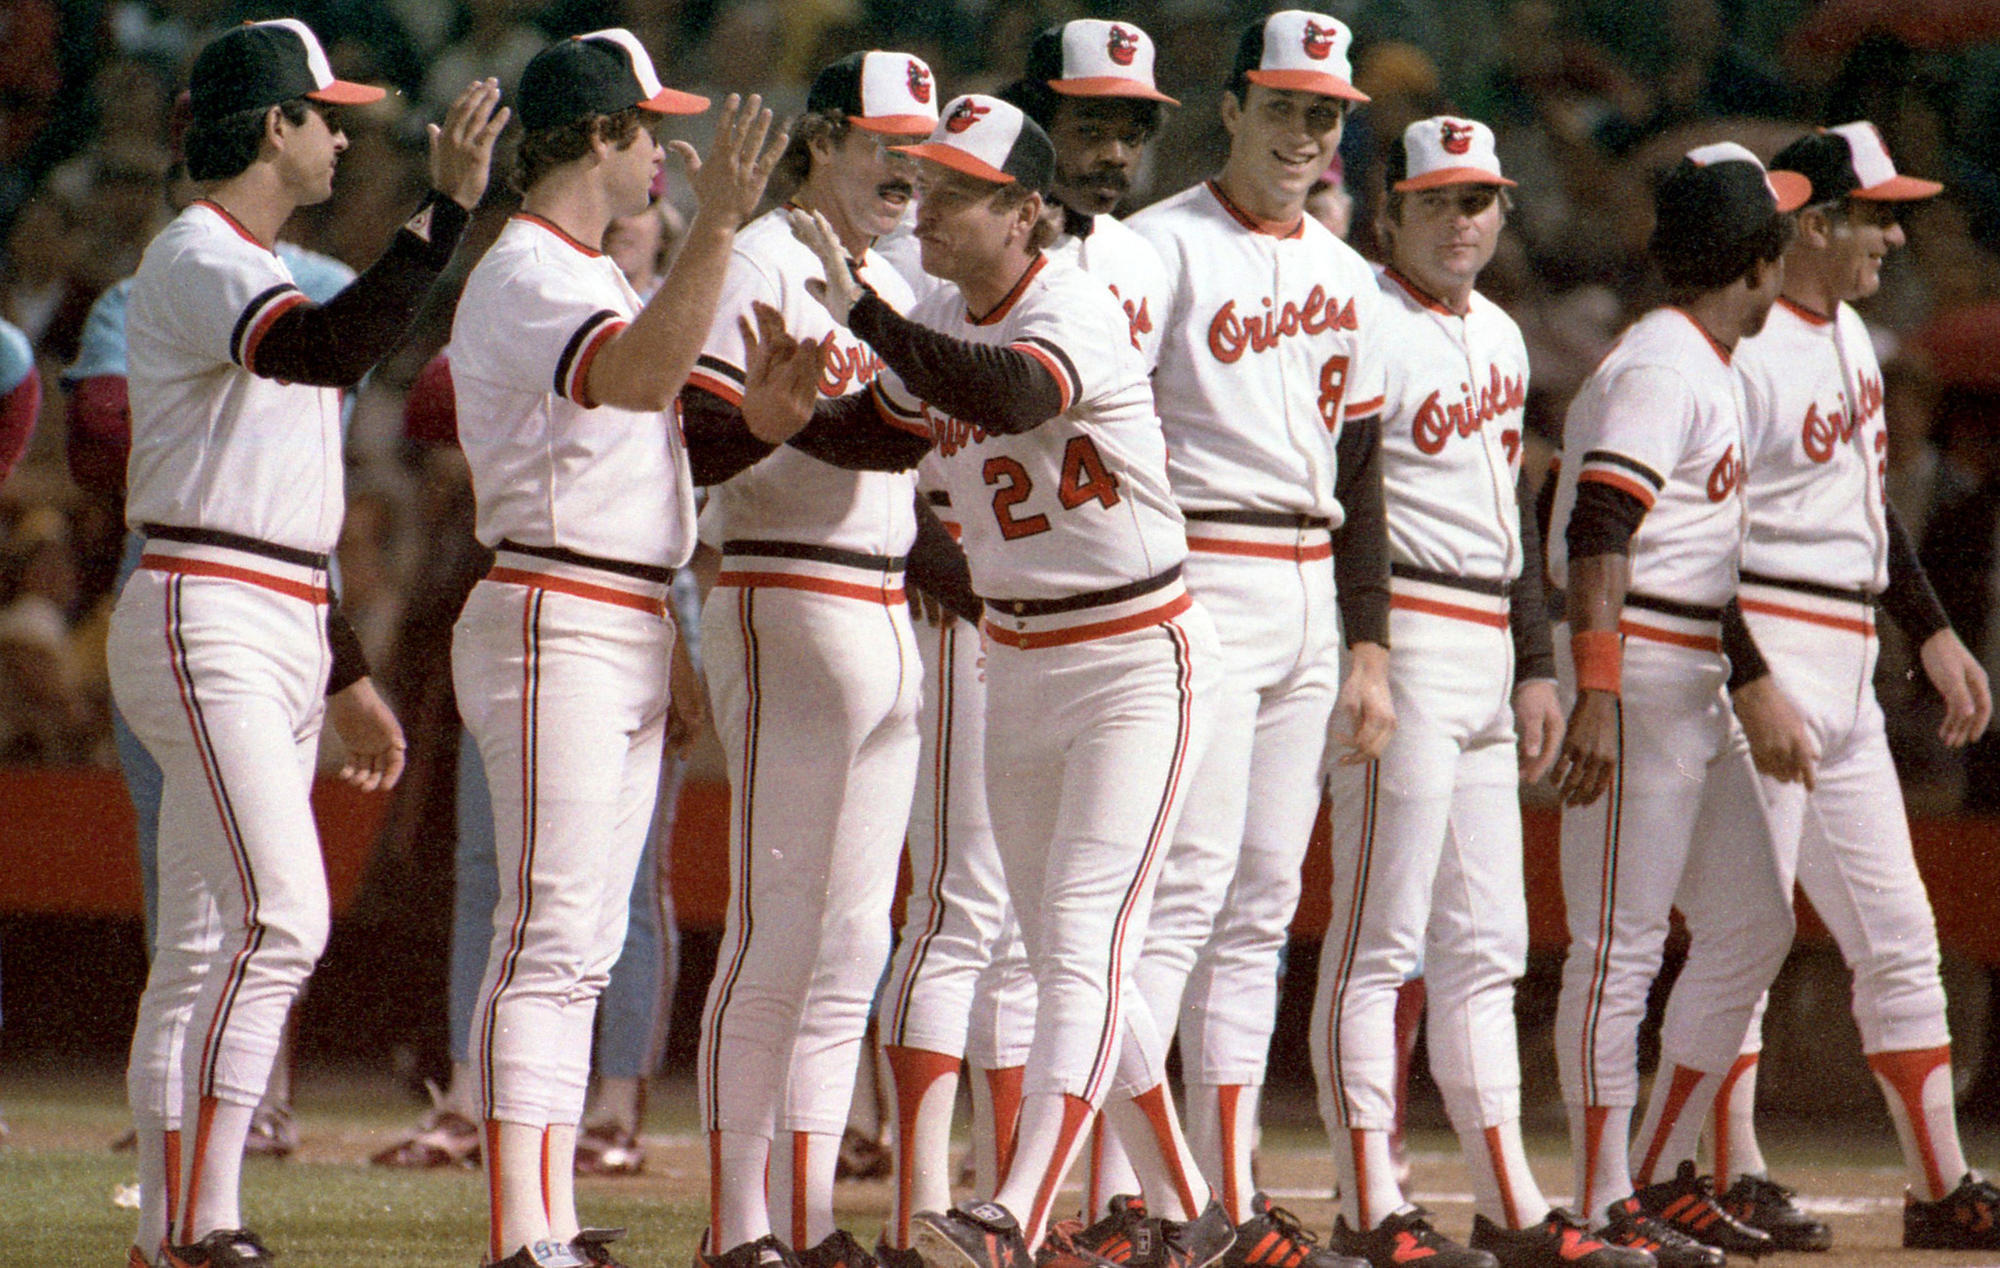 Bs-sp-ss-1983-orioles-quotes-20180315